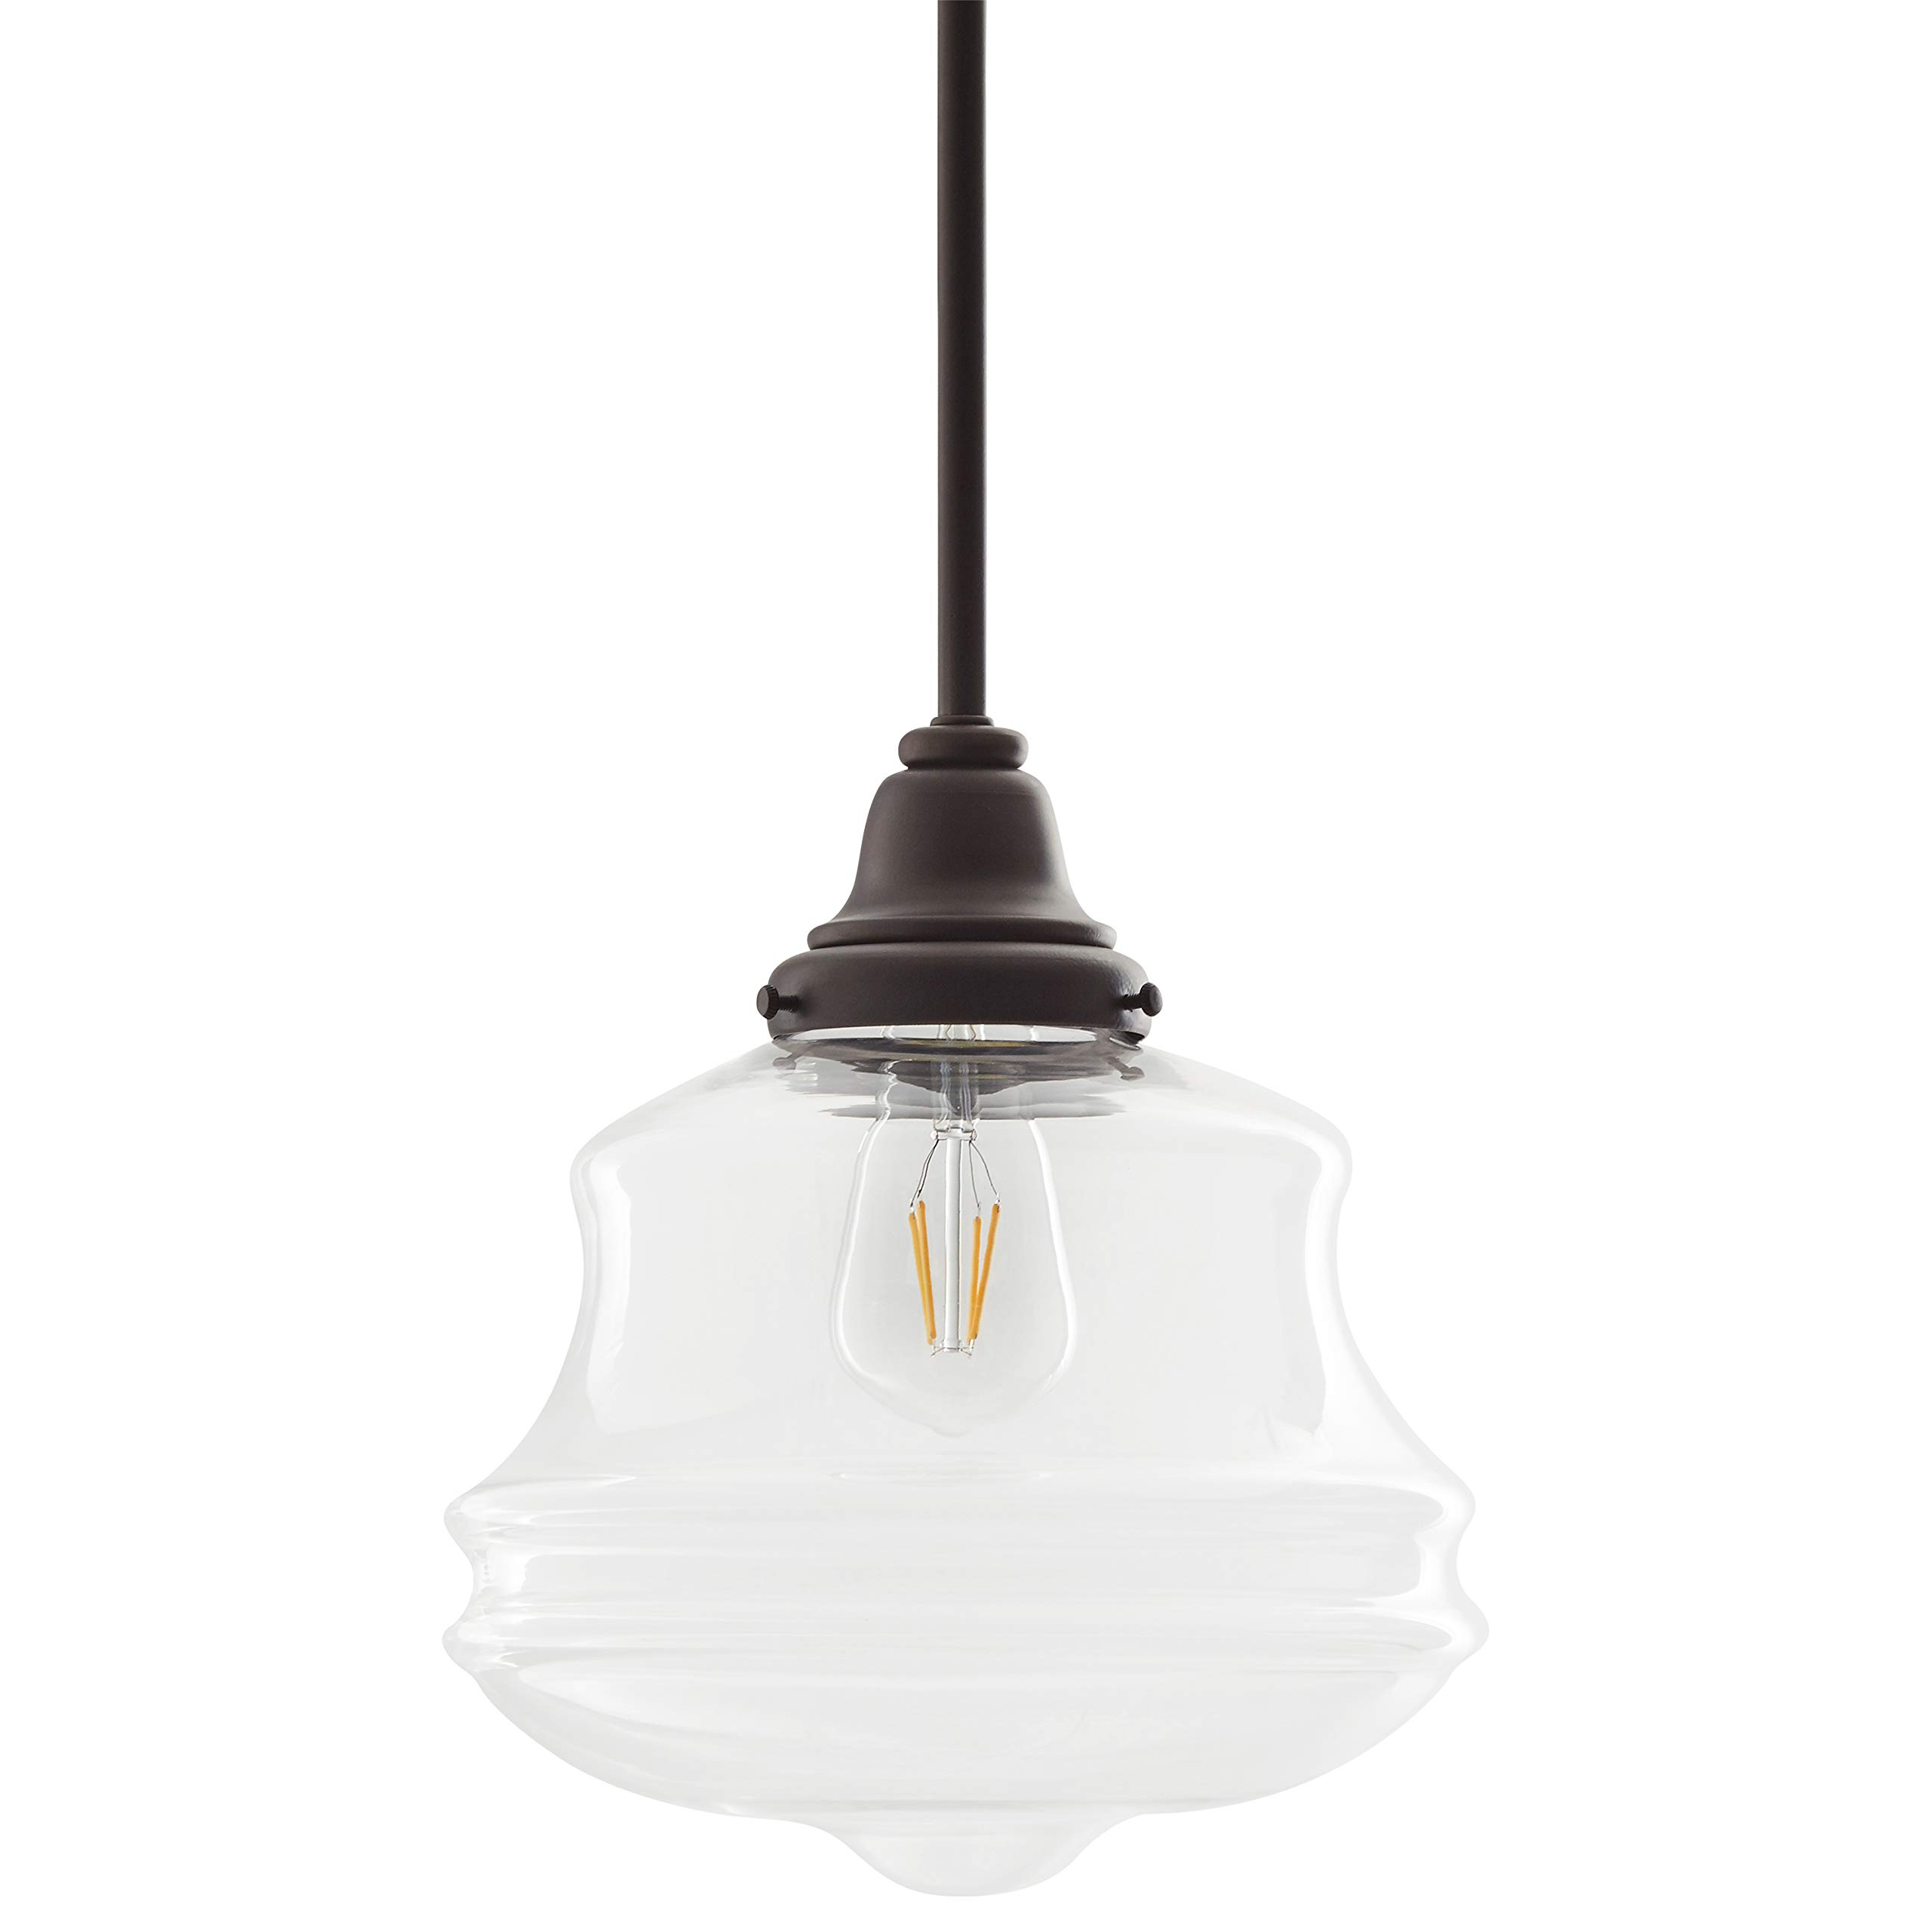 Stone & Beam Vintage Farmhouse Pendant Chandelier with LED Light Bulb - 10 x 10 Inch Clear Glass Shade, 60.12 Inch Cord, Antique Bronze